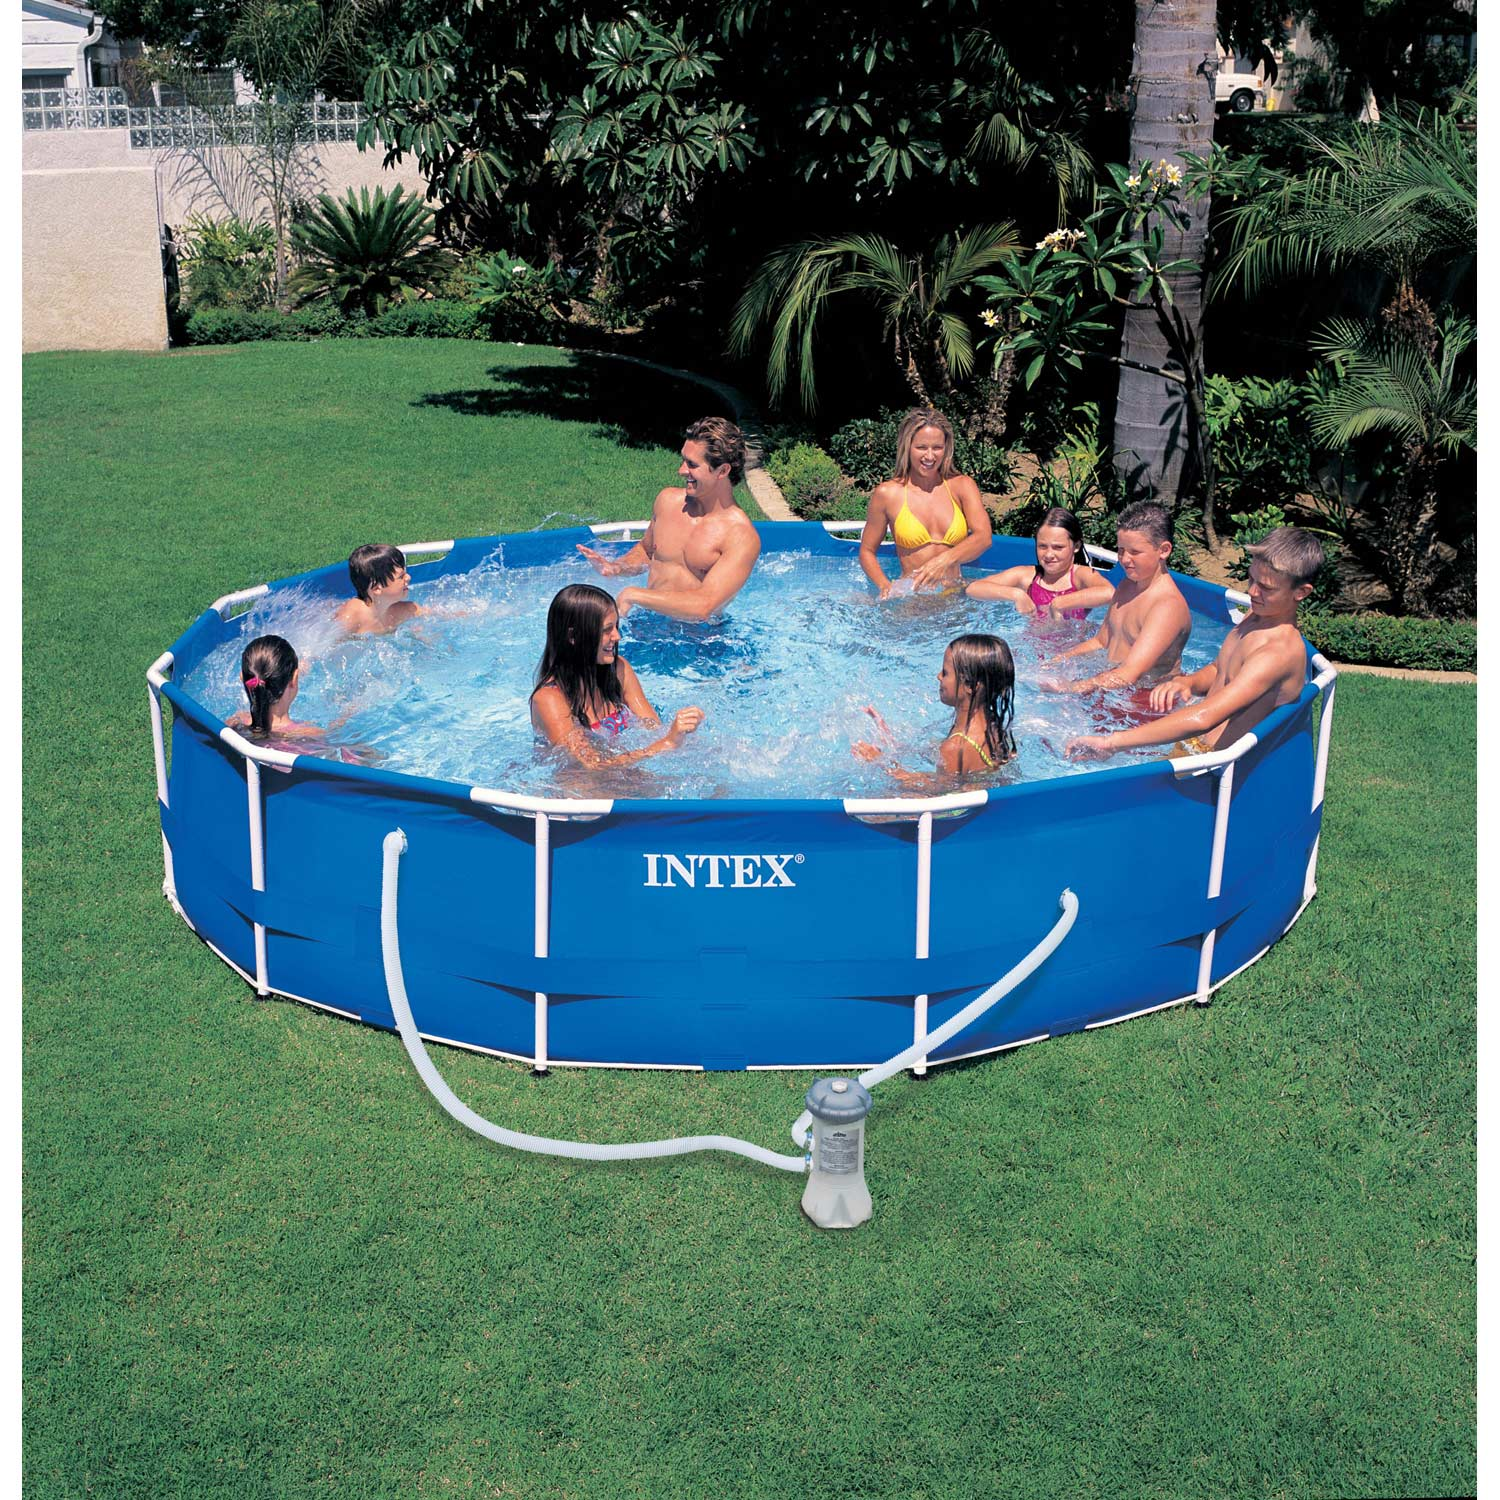 Piscine hors sol autoportante tubulaire metal frame intex for Piscine hors sol 90 cm